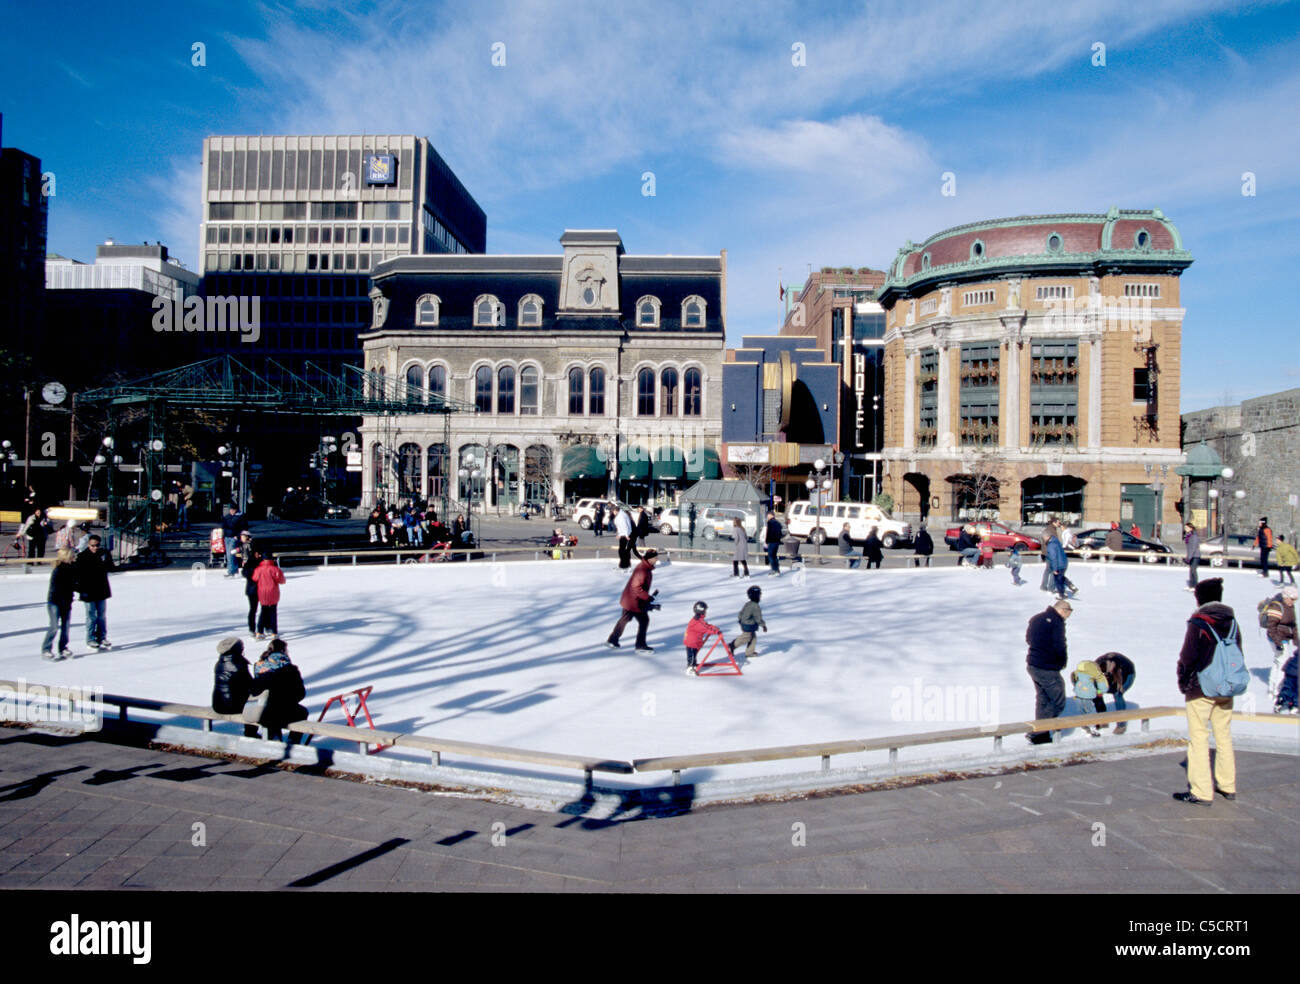 residents and tourists ice skate on public ice skating rink in Canada - Stock Image